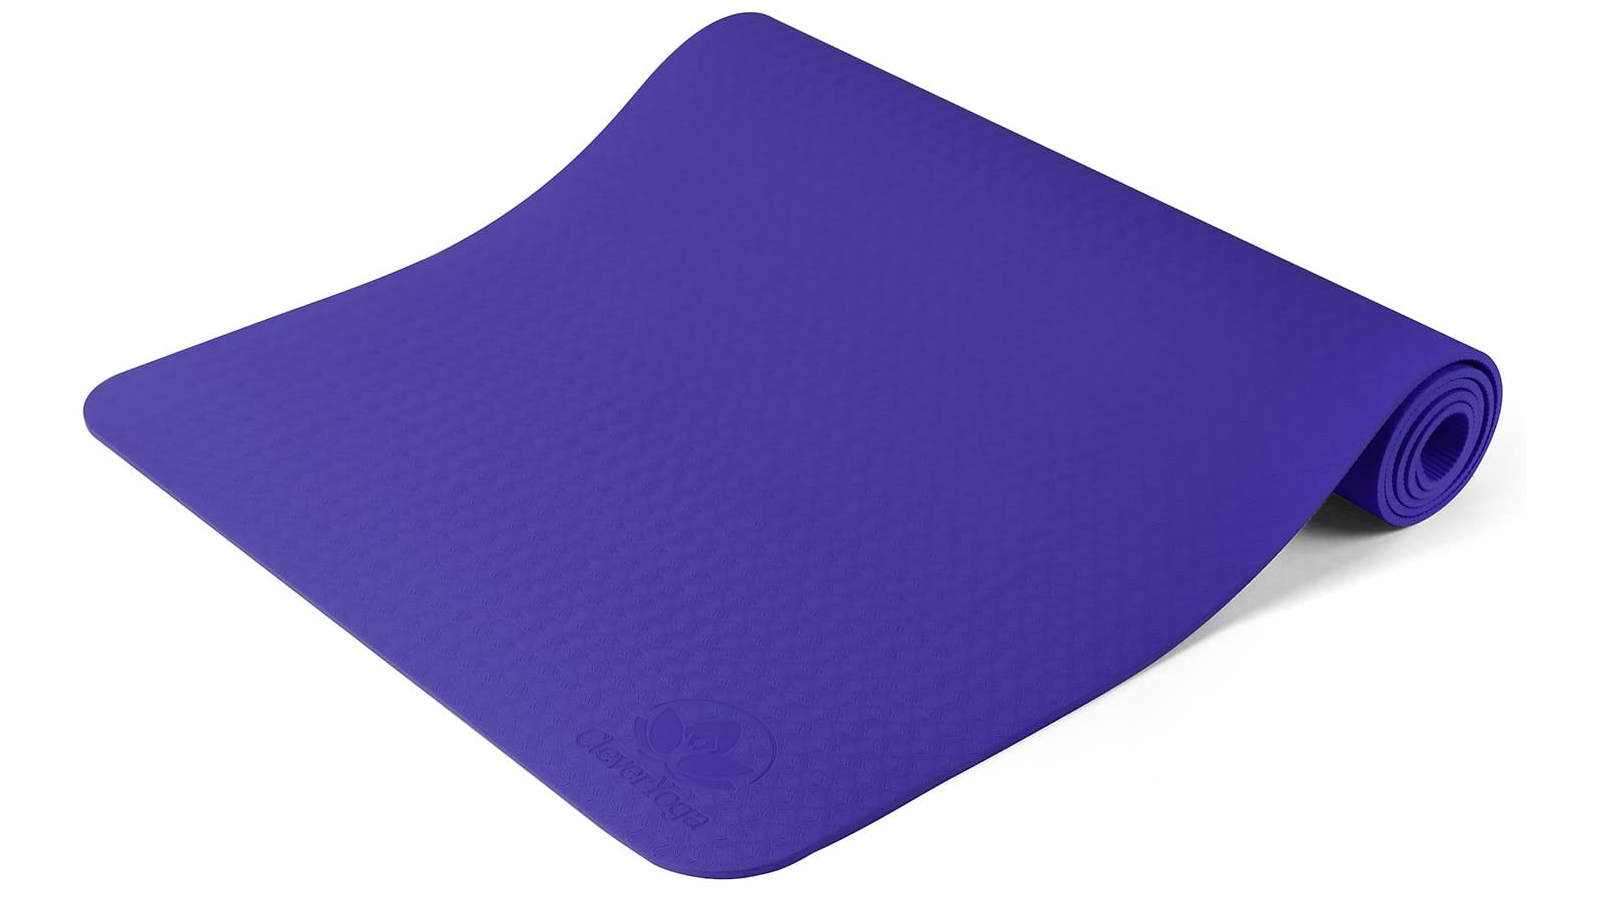 Strike a Pose with This Extra Big Nonslip Yoga Mat